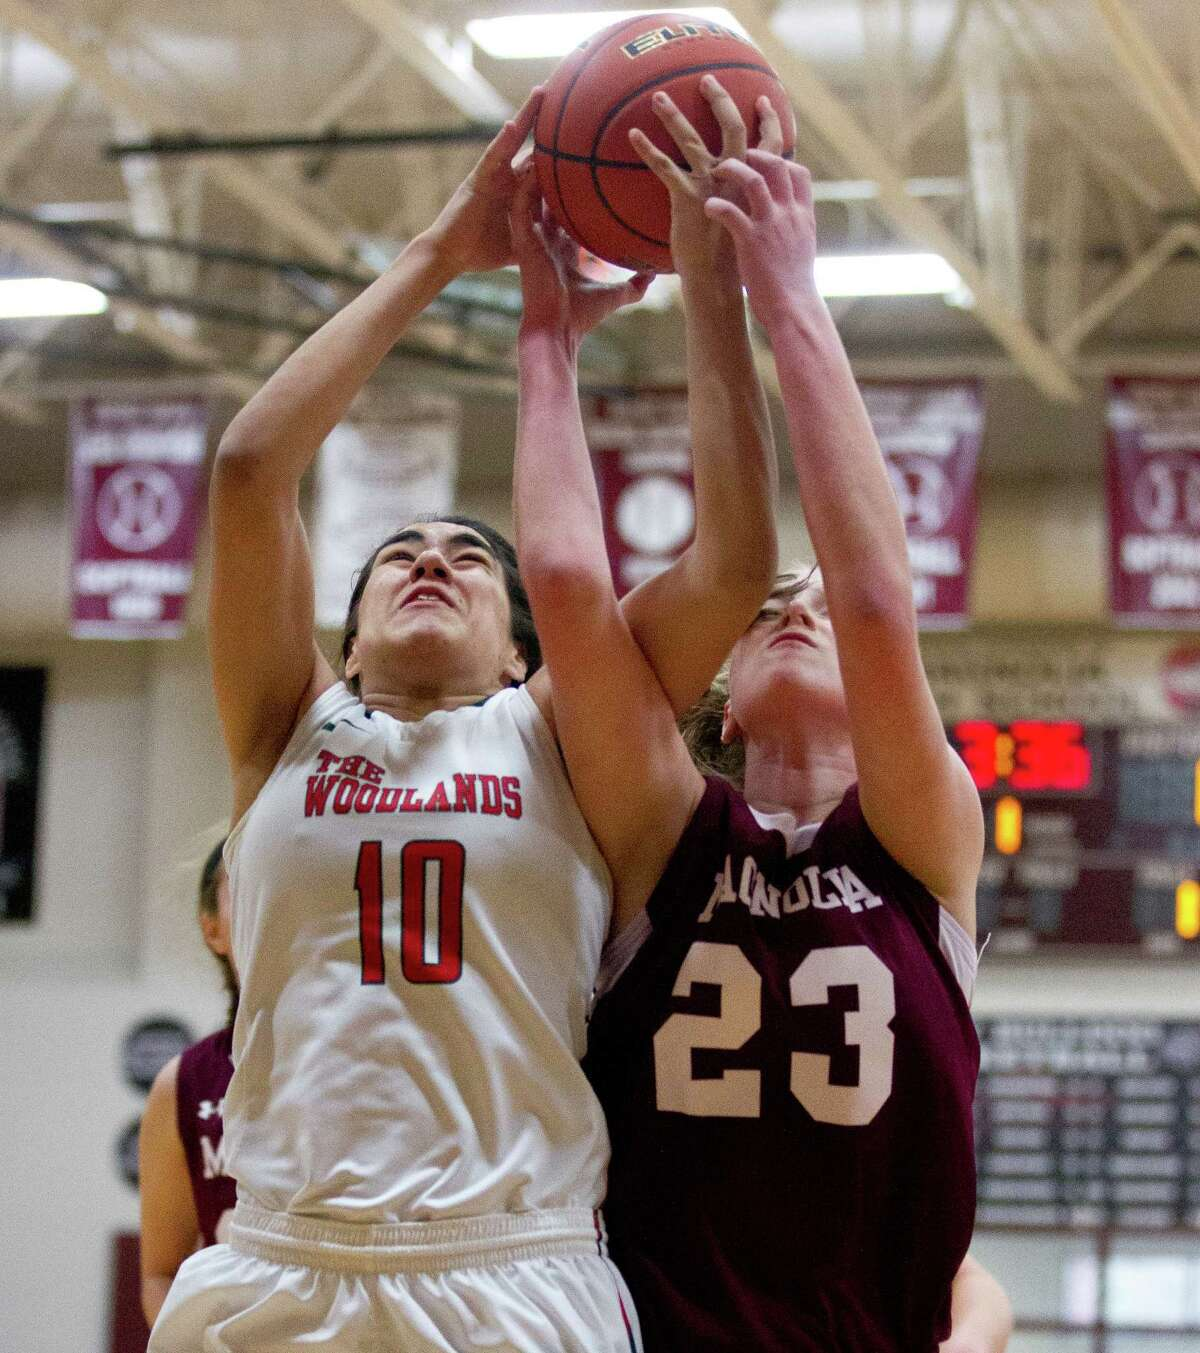 The Woodlands forward Luisa De La Rosa (10) and Magnolia forward Alexus Wykoff (23) battle for a rebound during the first quarter of a high school girls basketball game at the Magnolia Holiday Hoop Fest Friday, Dec. 30, 2016, in Magnolia.